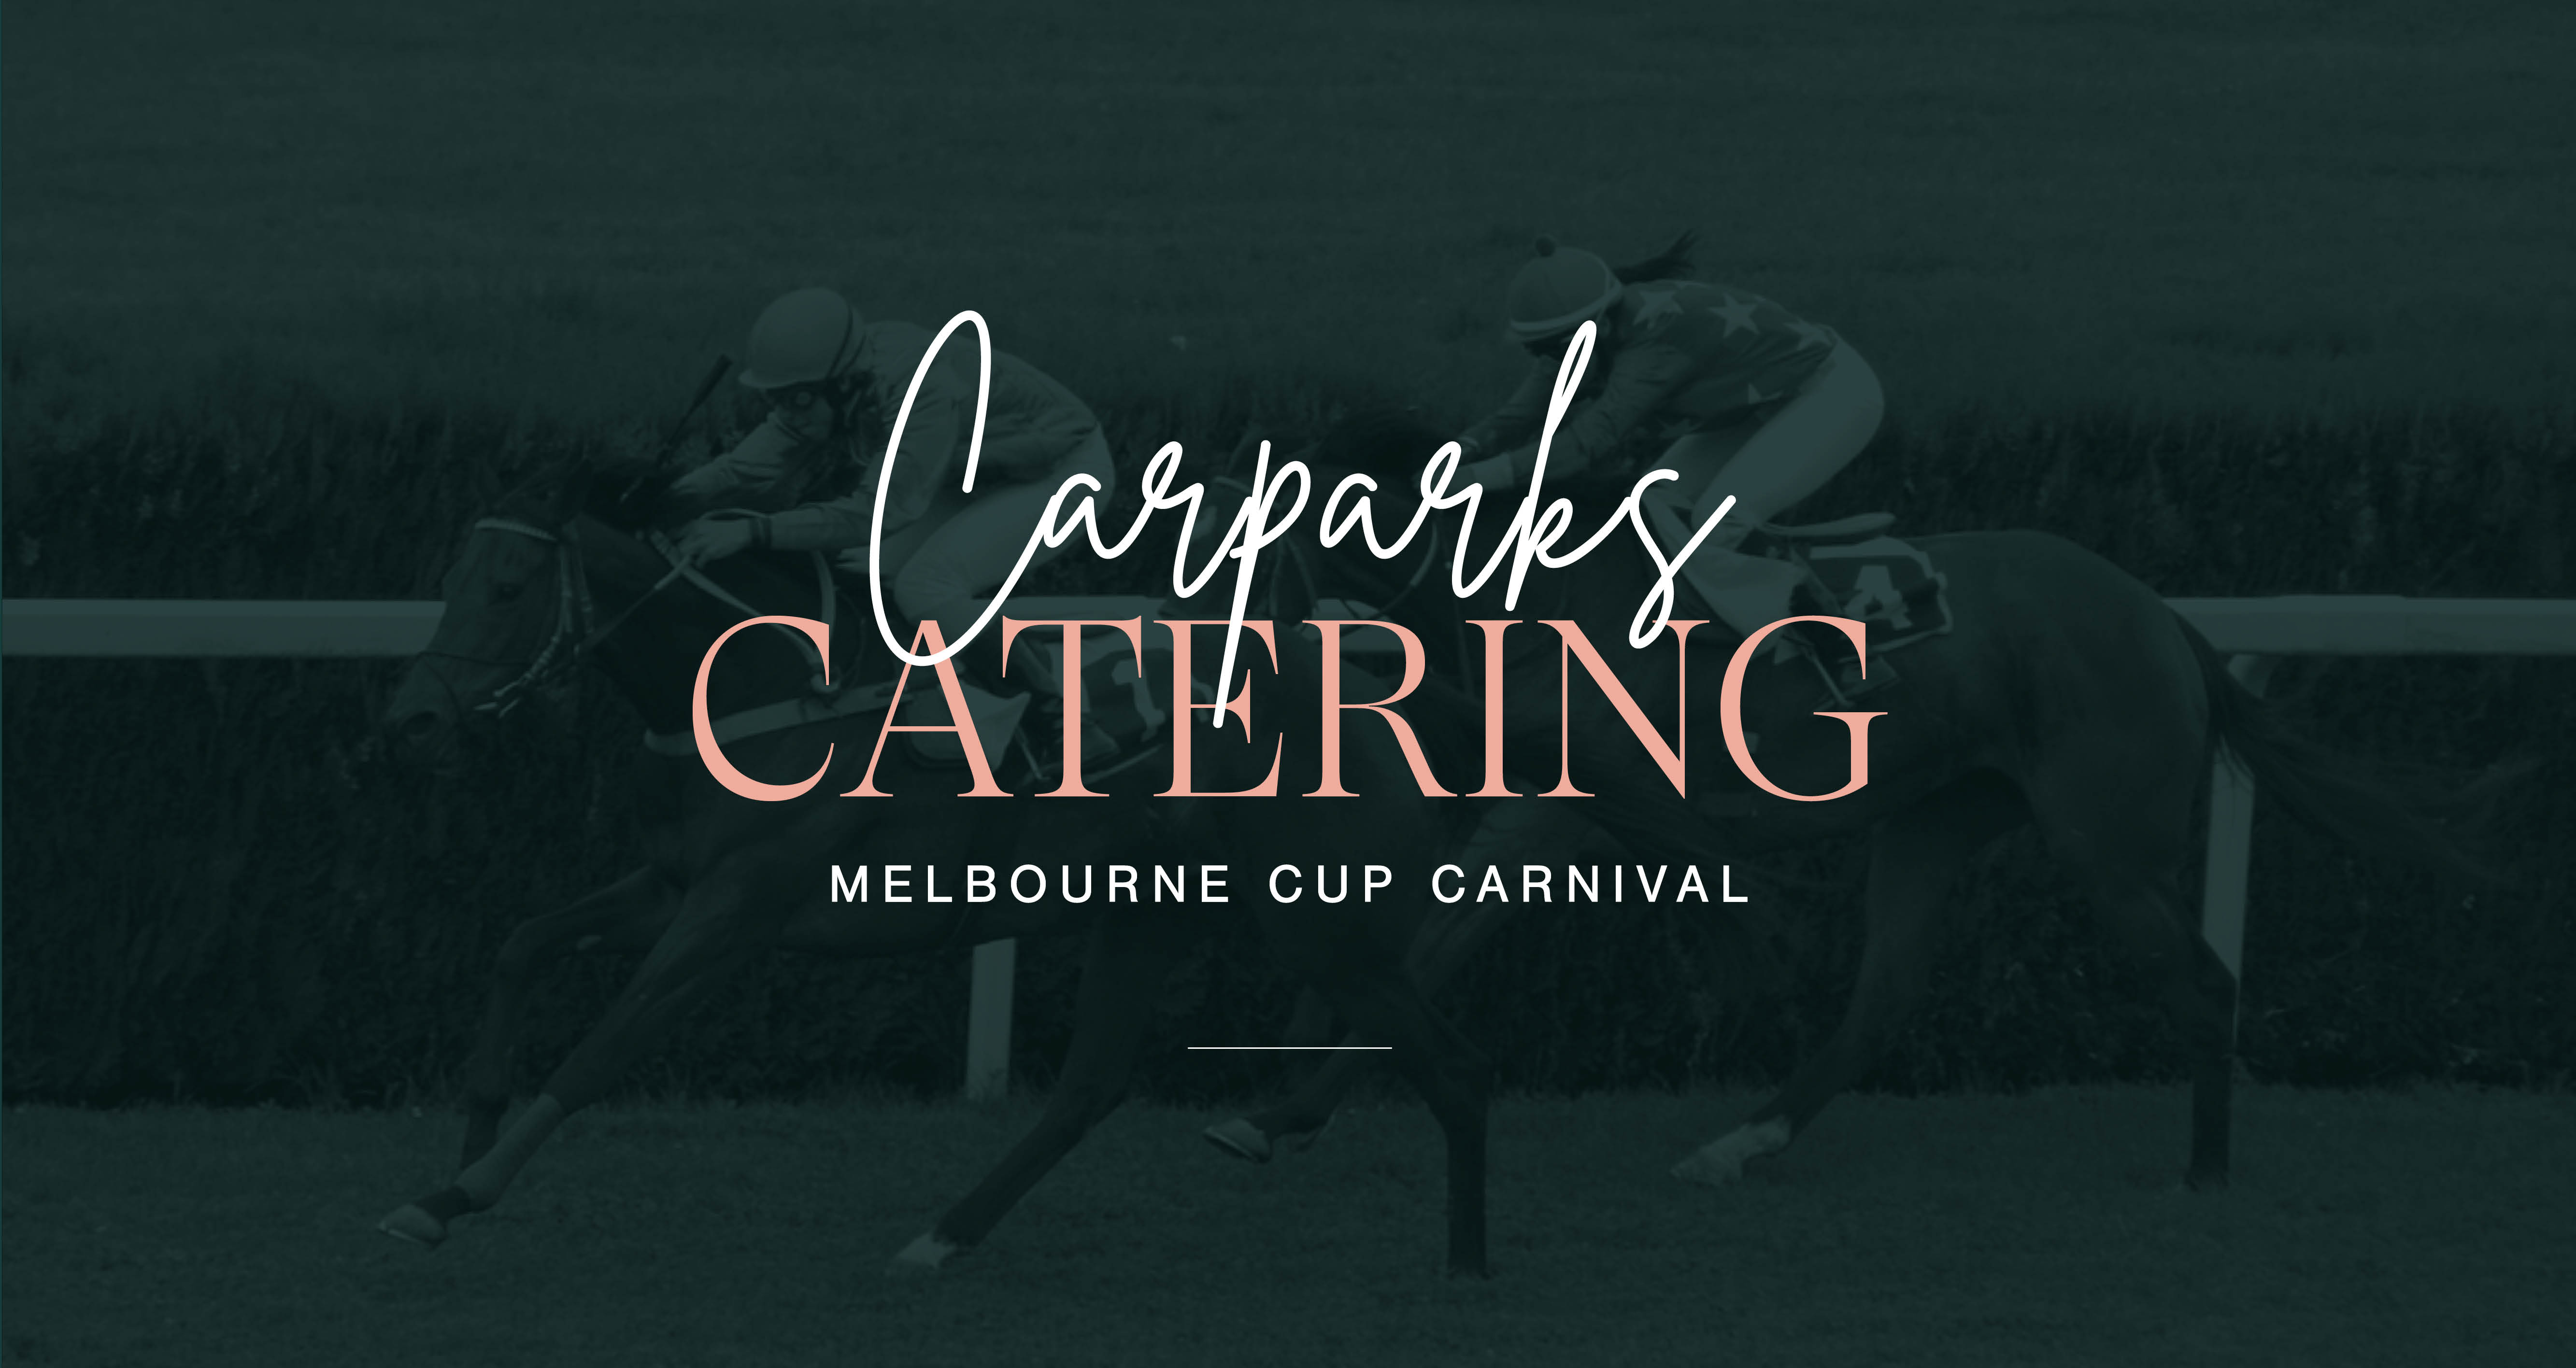 PETER ROWLAND CARPARKS CATERING